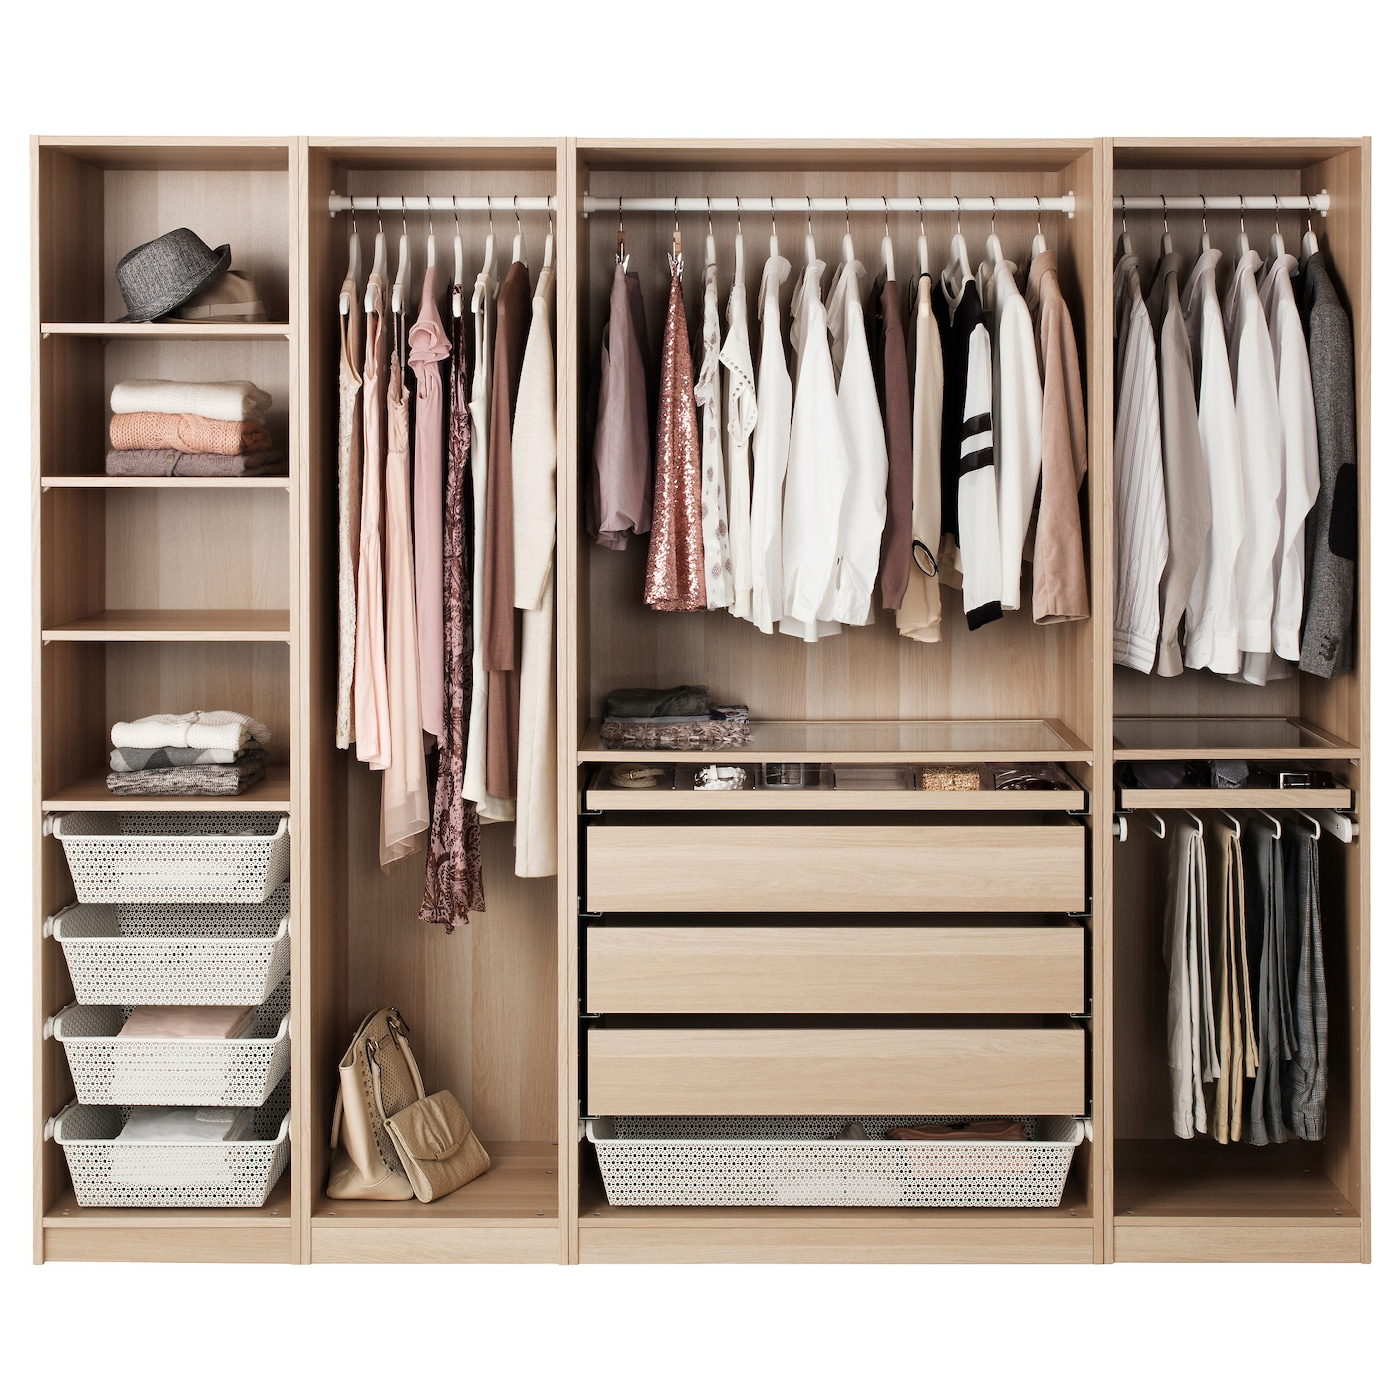 master next closet do crown ikea pax in pin this the look at will molding like